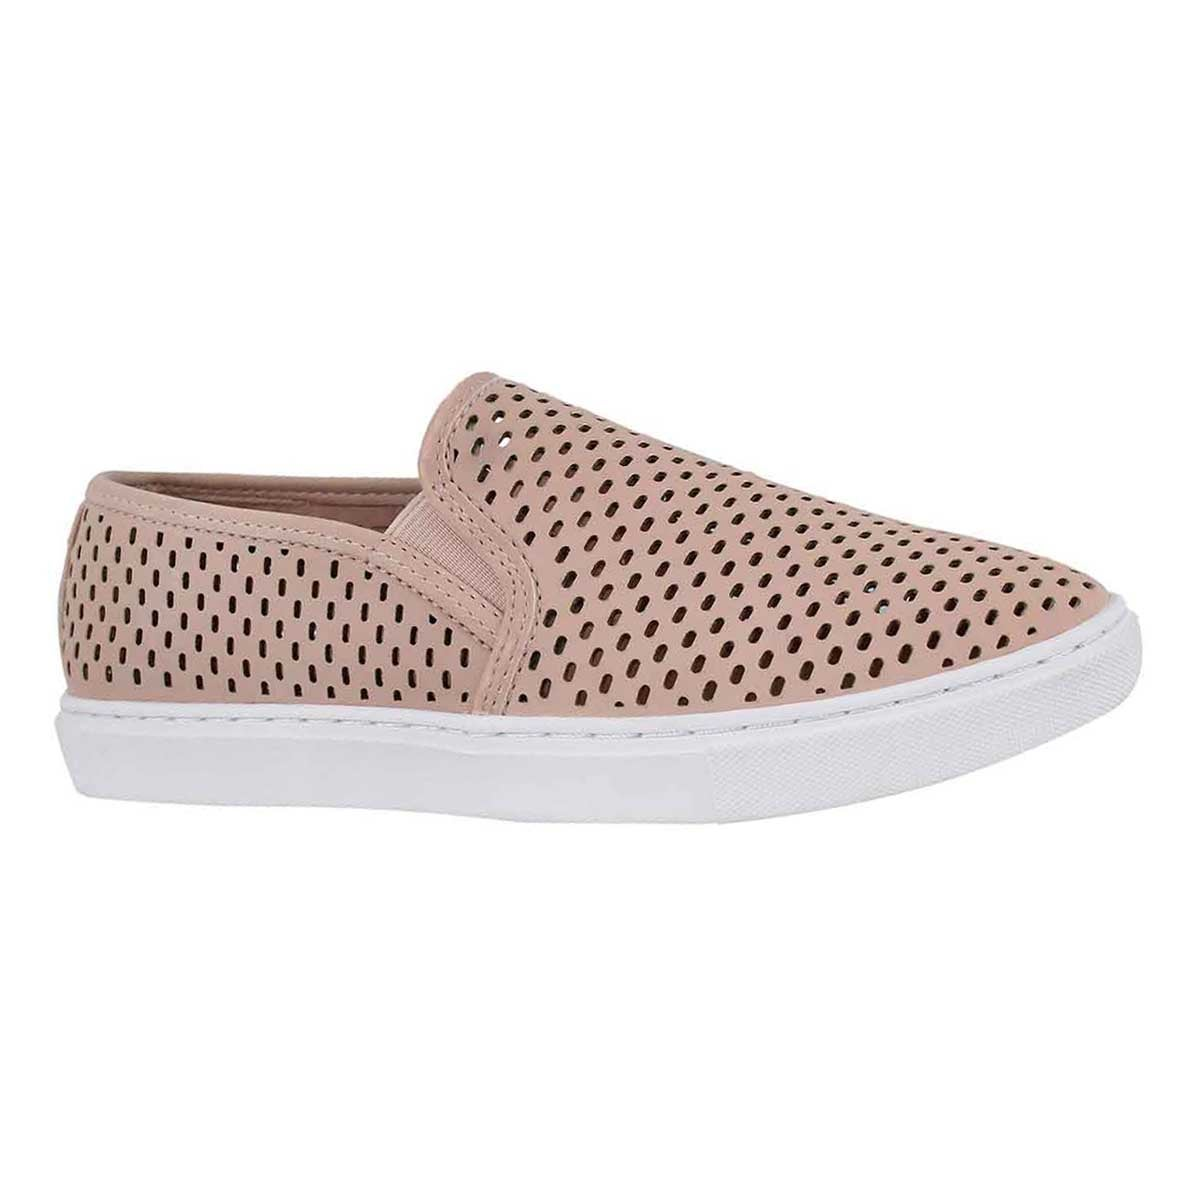 Women's ELOUISE pink casual slip on shoes